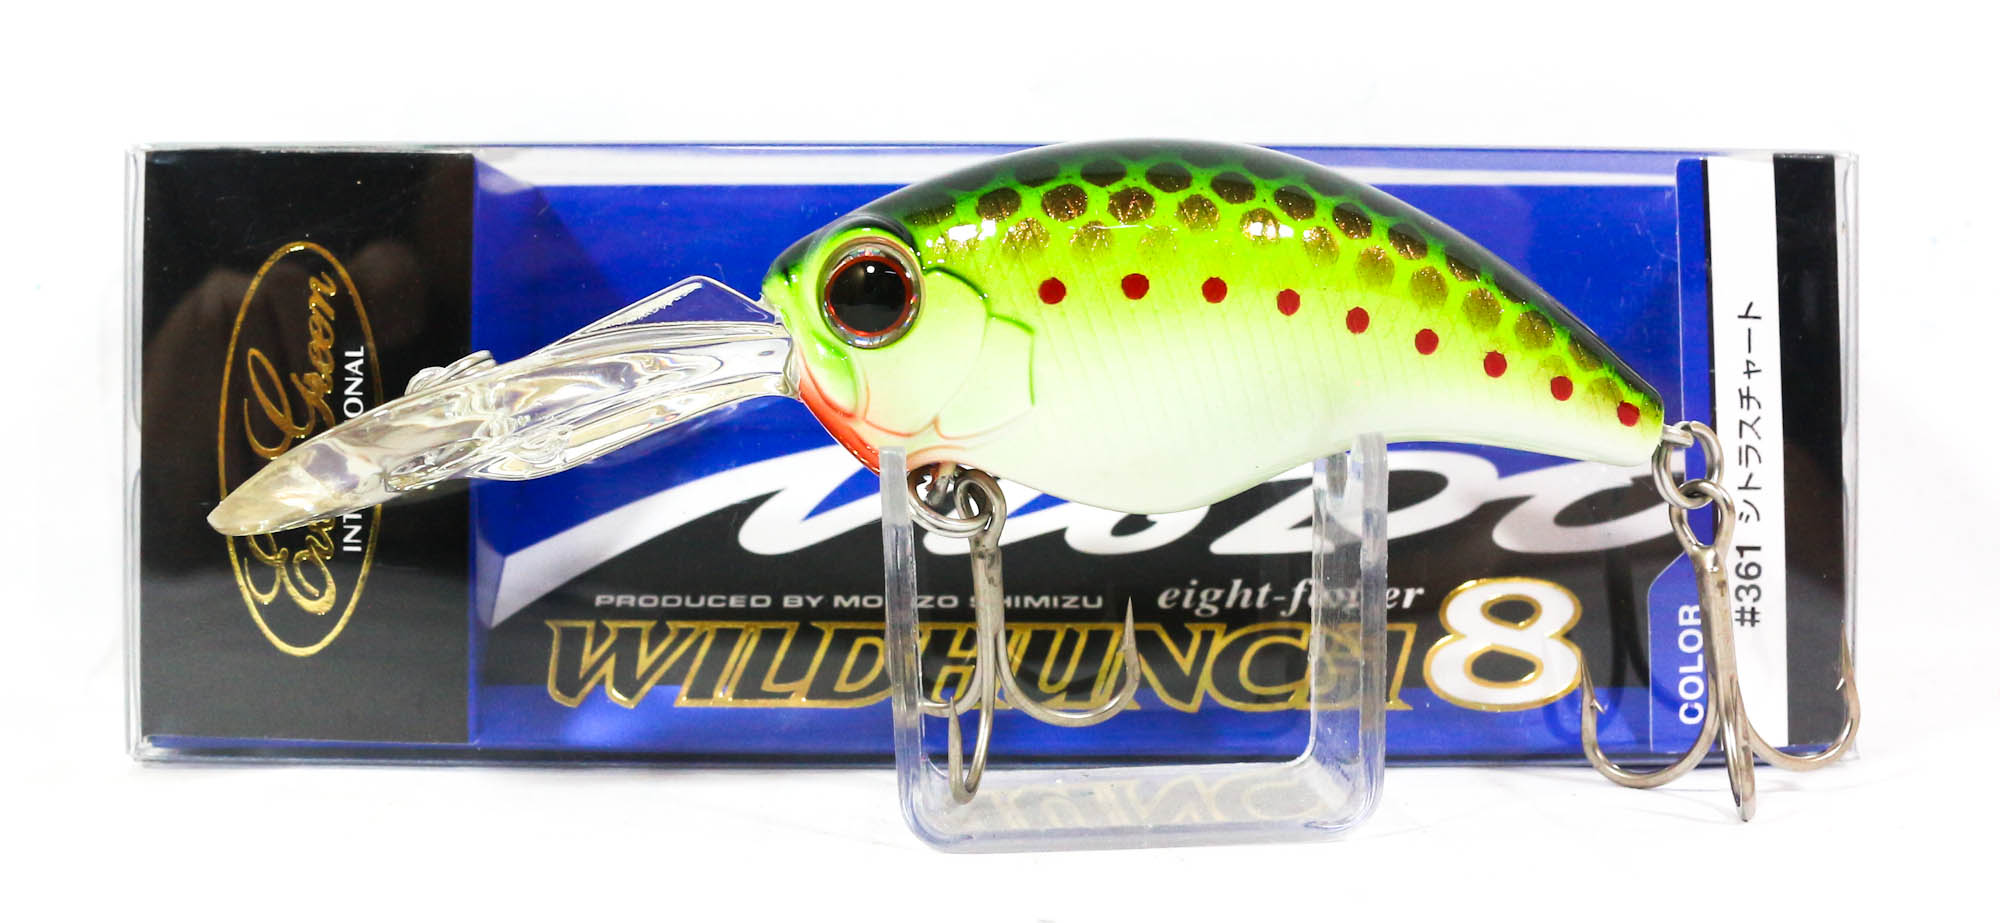 Evergreen Combat Crank Wild Hunch Eight Footer Floating Lure 373 (9575)